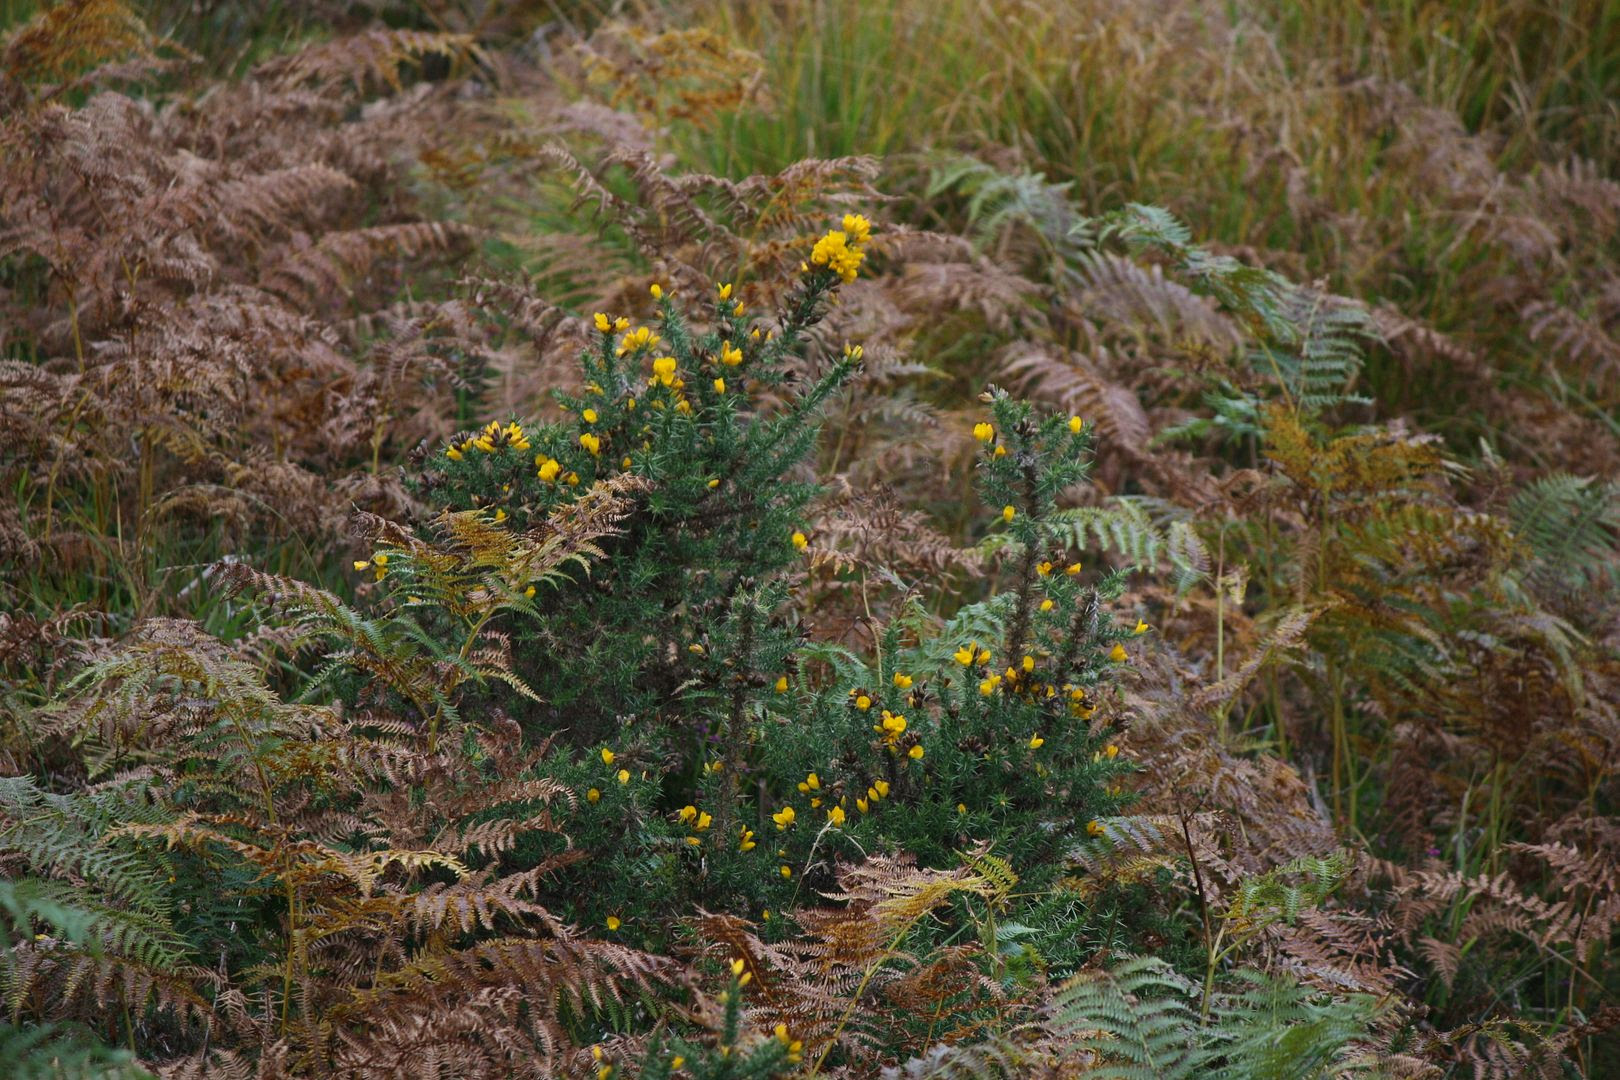 Wildflowers in Glendalough, Ireland photo IMG_3969_zpsclmtgltx.jpg